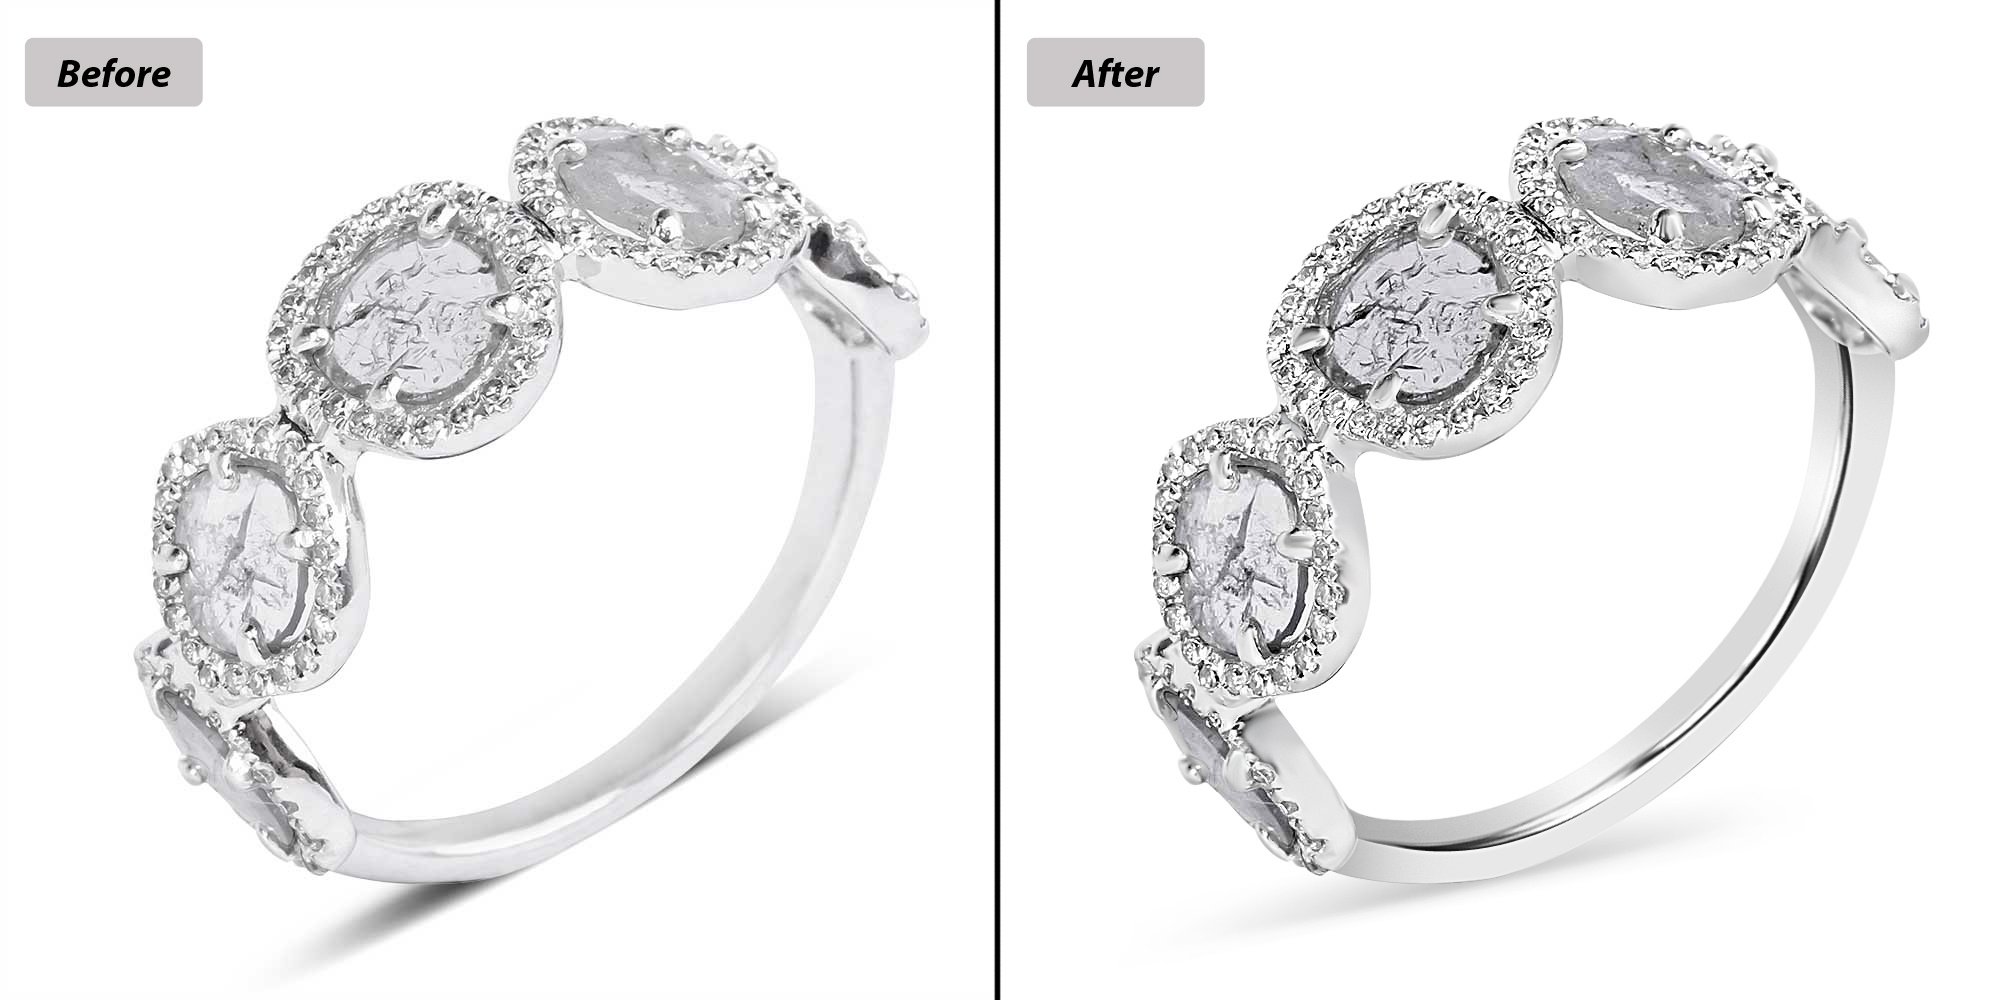 Clipping Charm_jewellery retouch 011